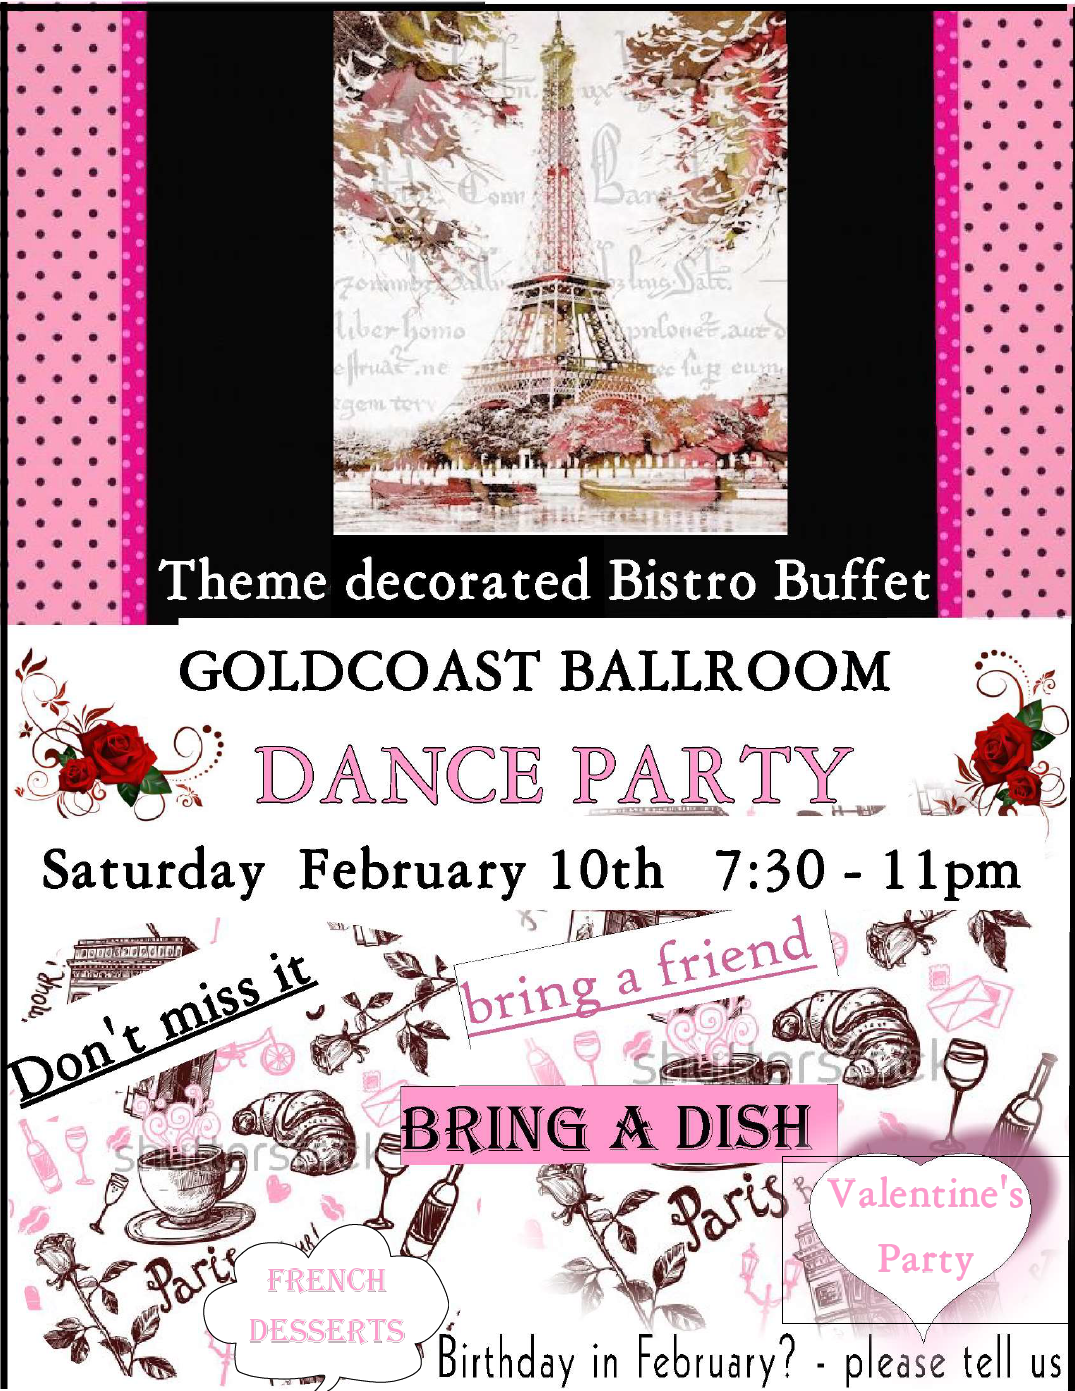 February 10, 2018 Valentine's Day Party!